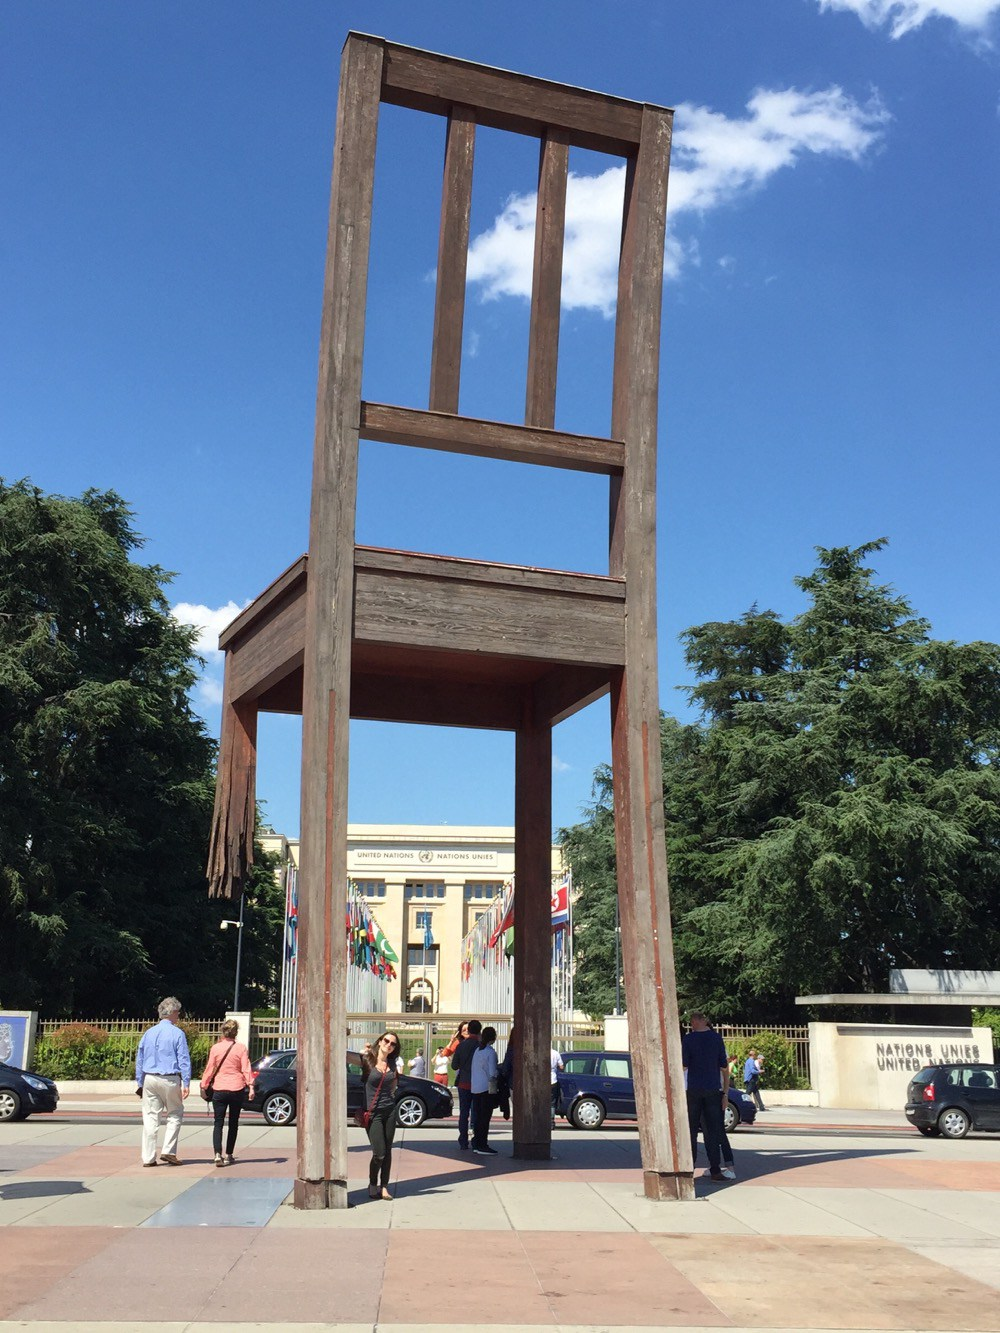 View of the giant Broken Chair, located in front of the UN